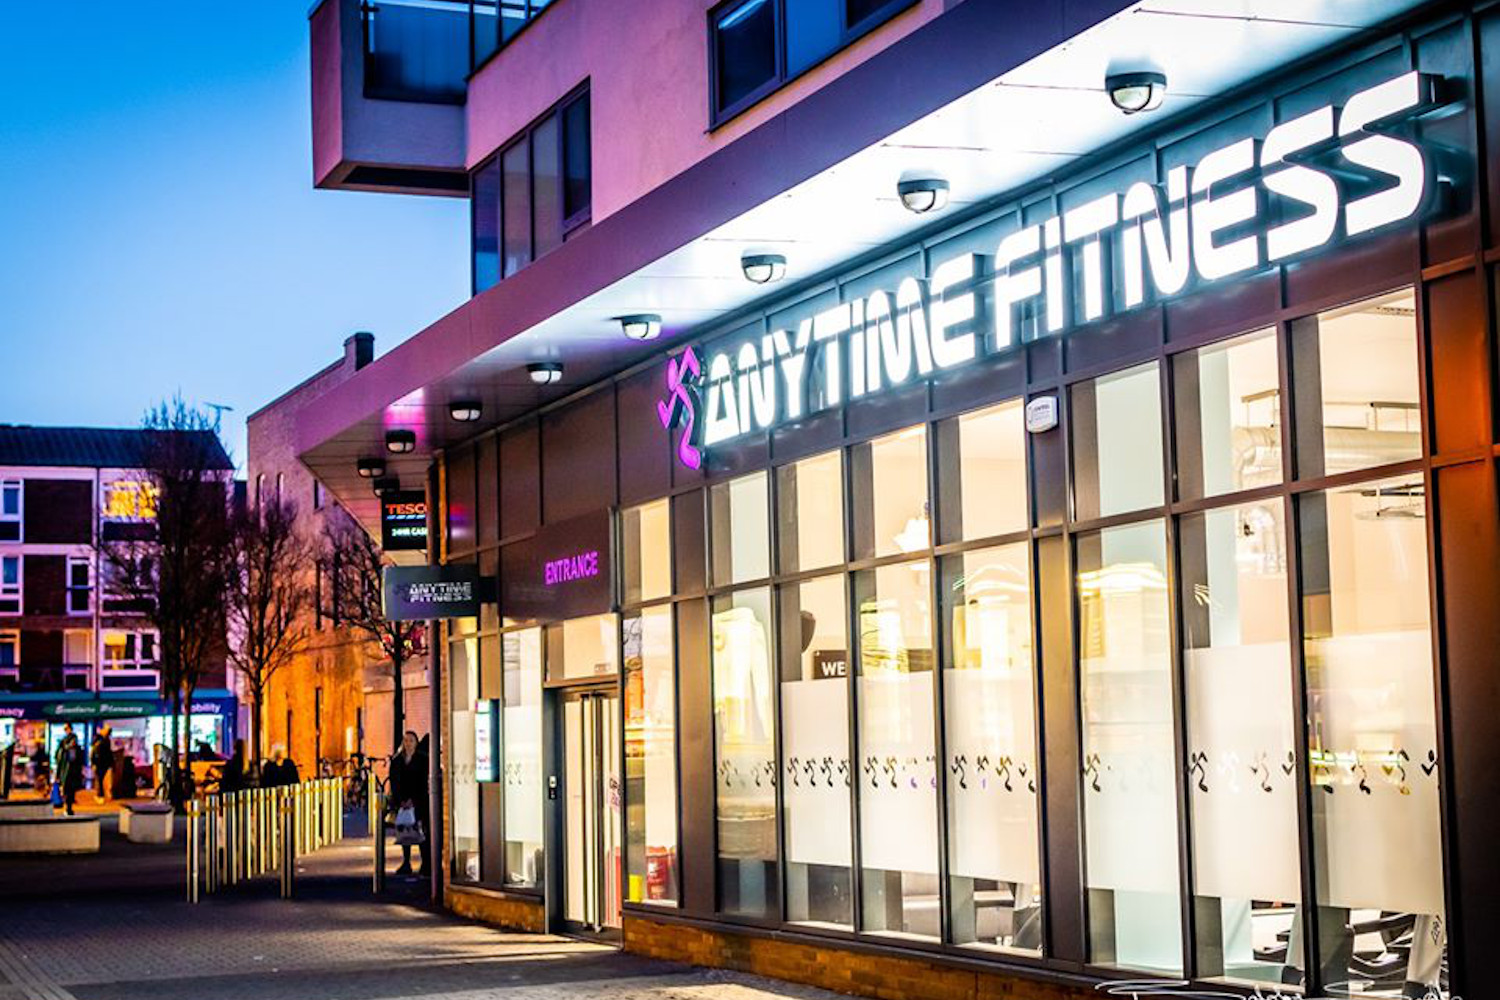 Anytime fitness gym in Bow